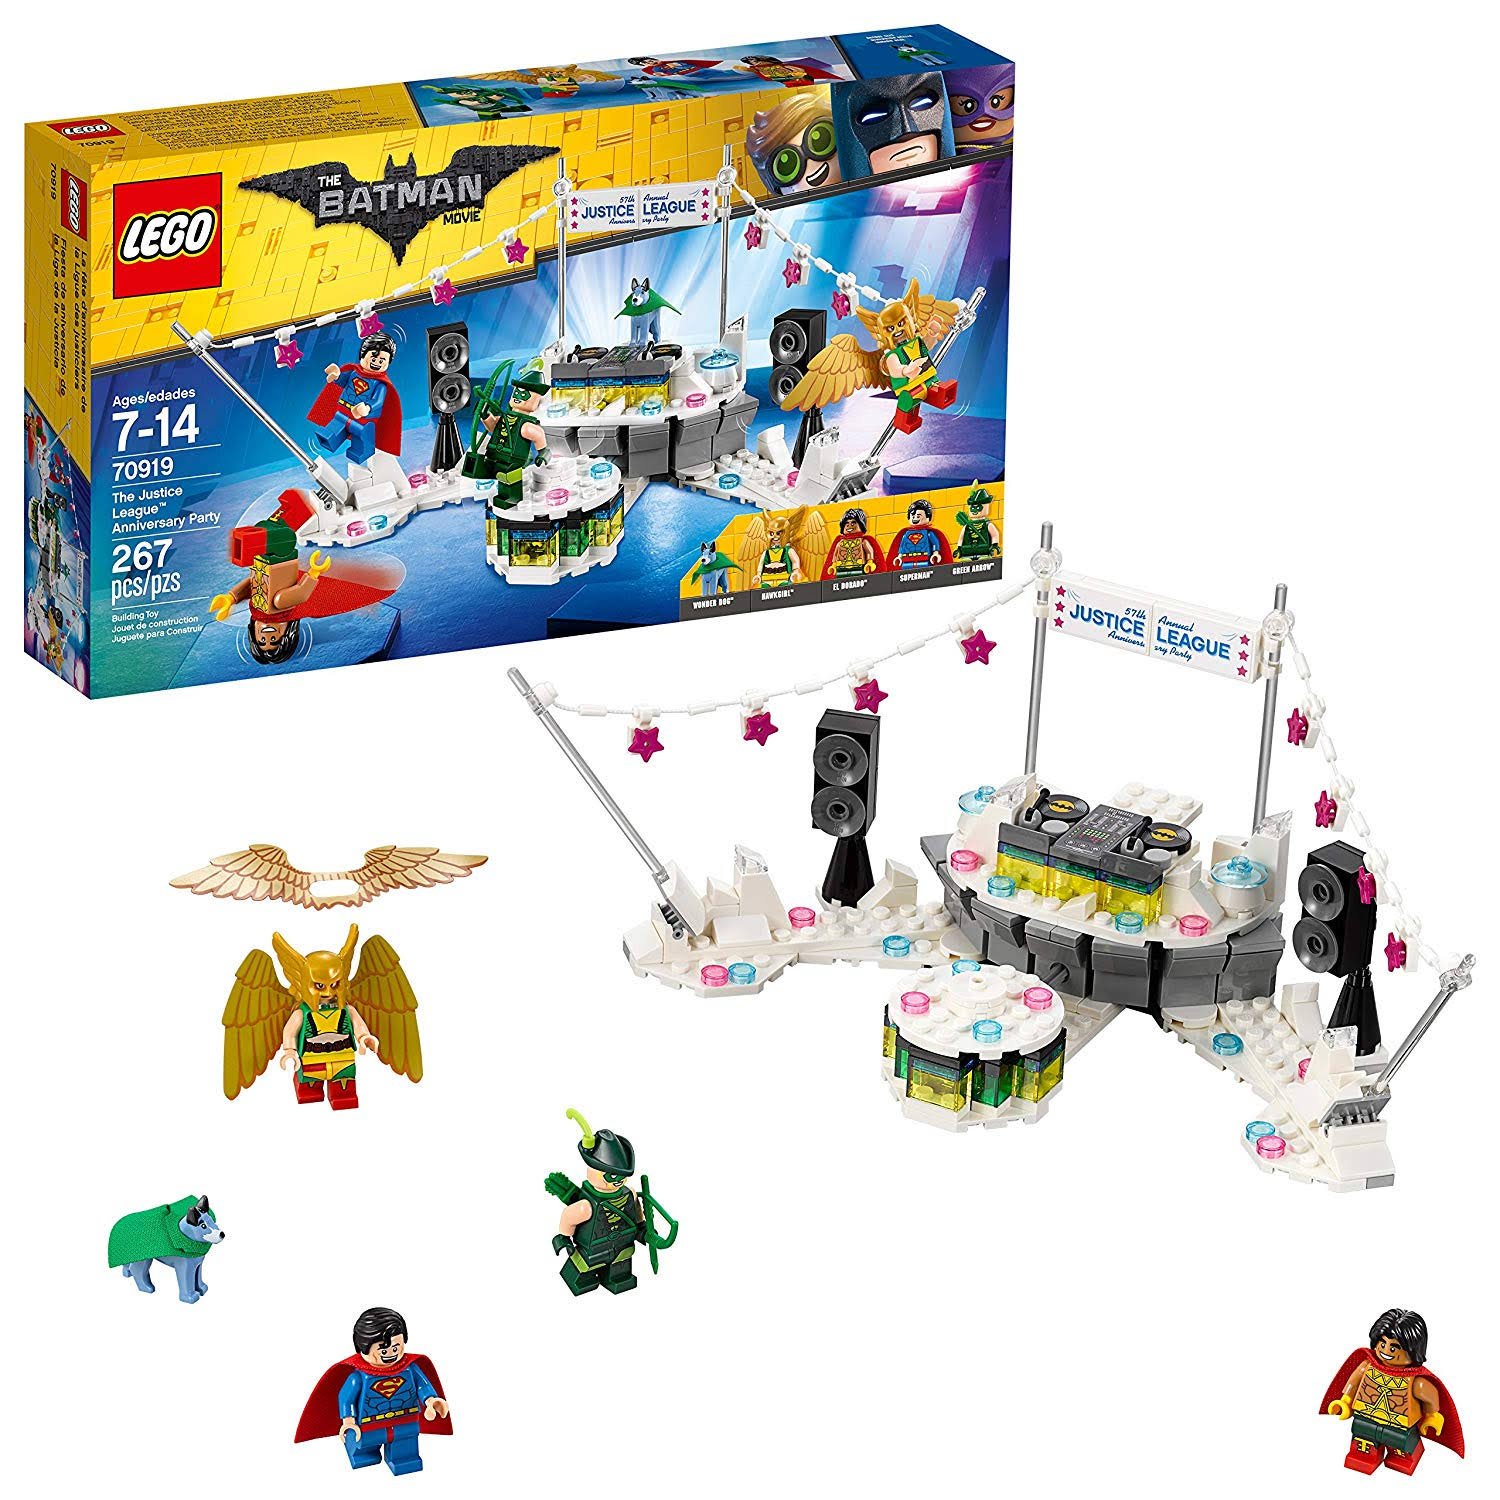 LEGO 70919 Batman Movie The Justice League Anniversary Party Building Kit - 267pcs